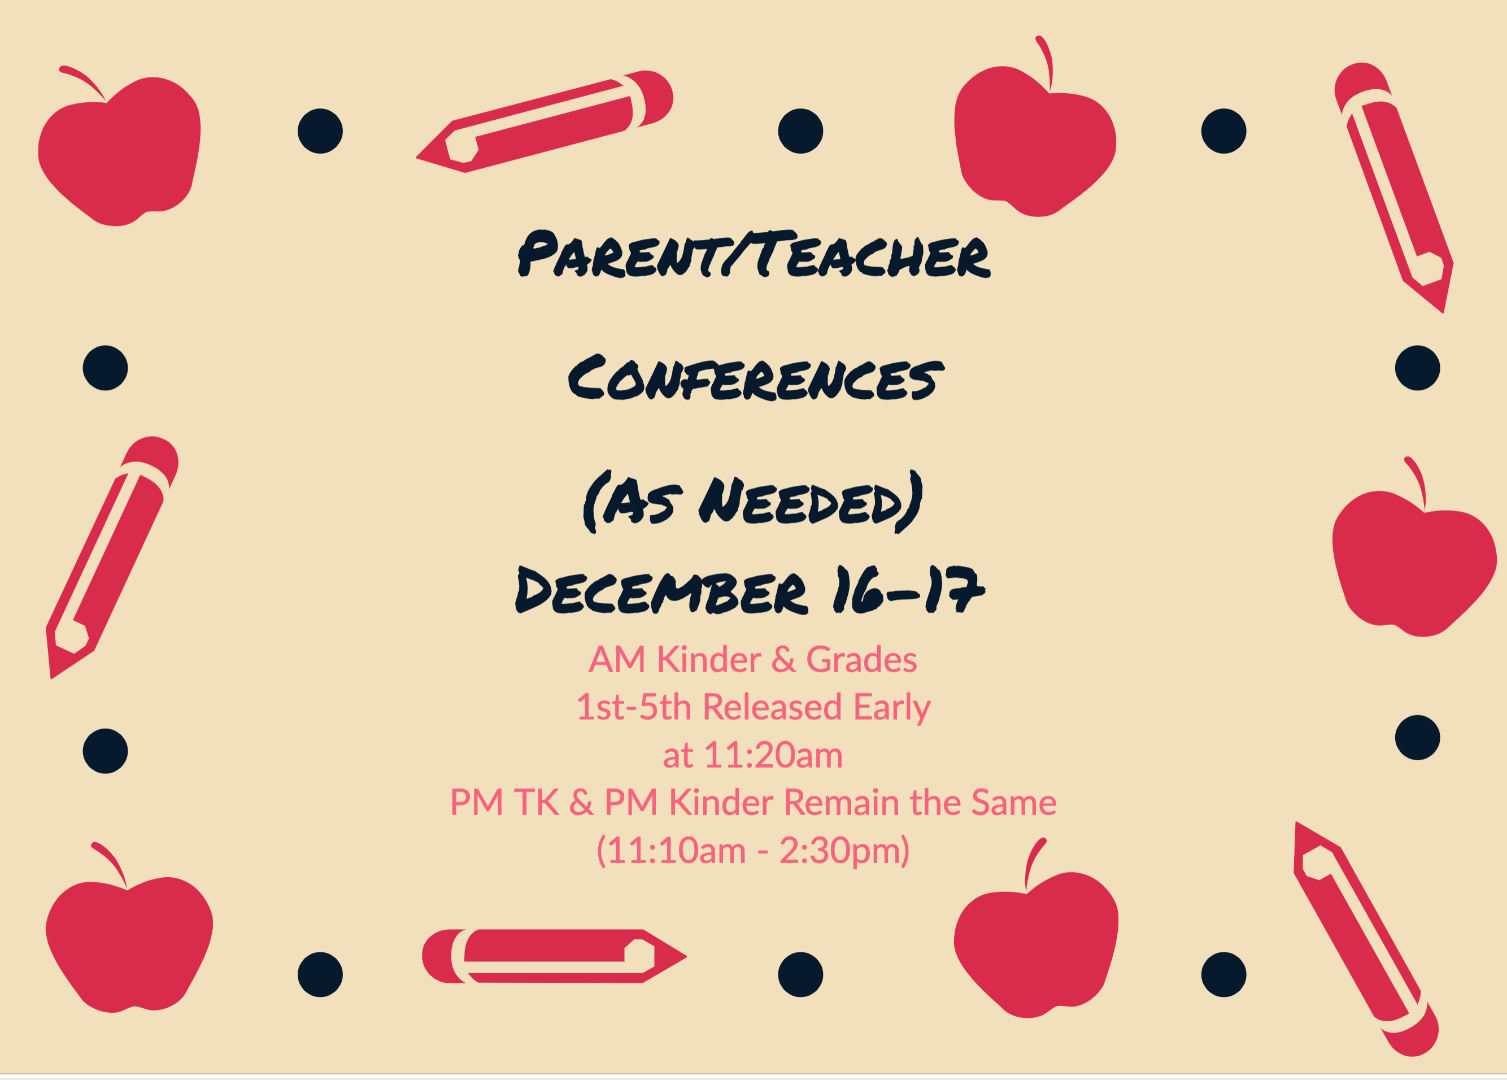 Parent Teacher As Needed Conferences